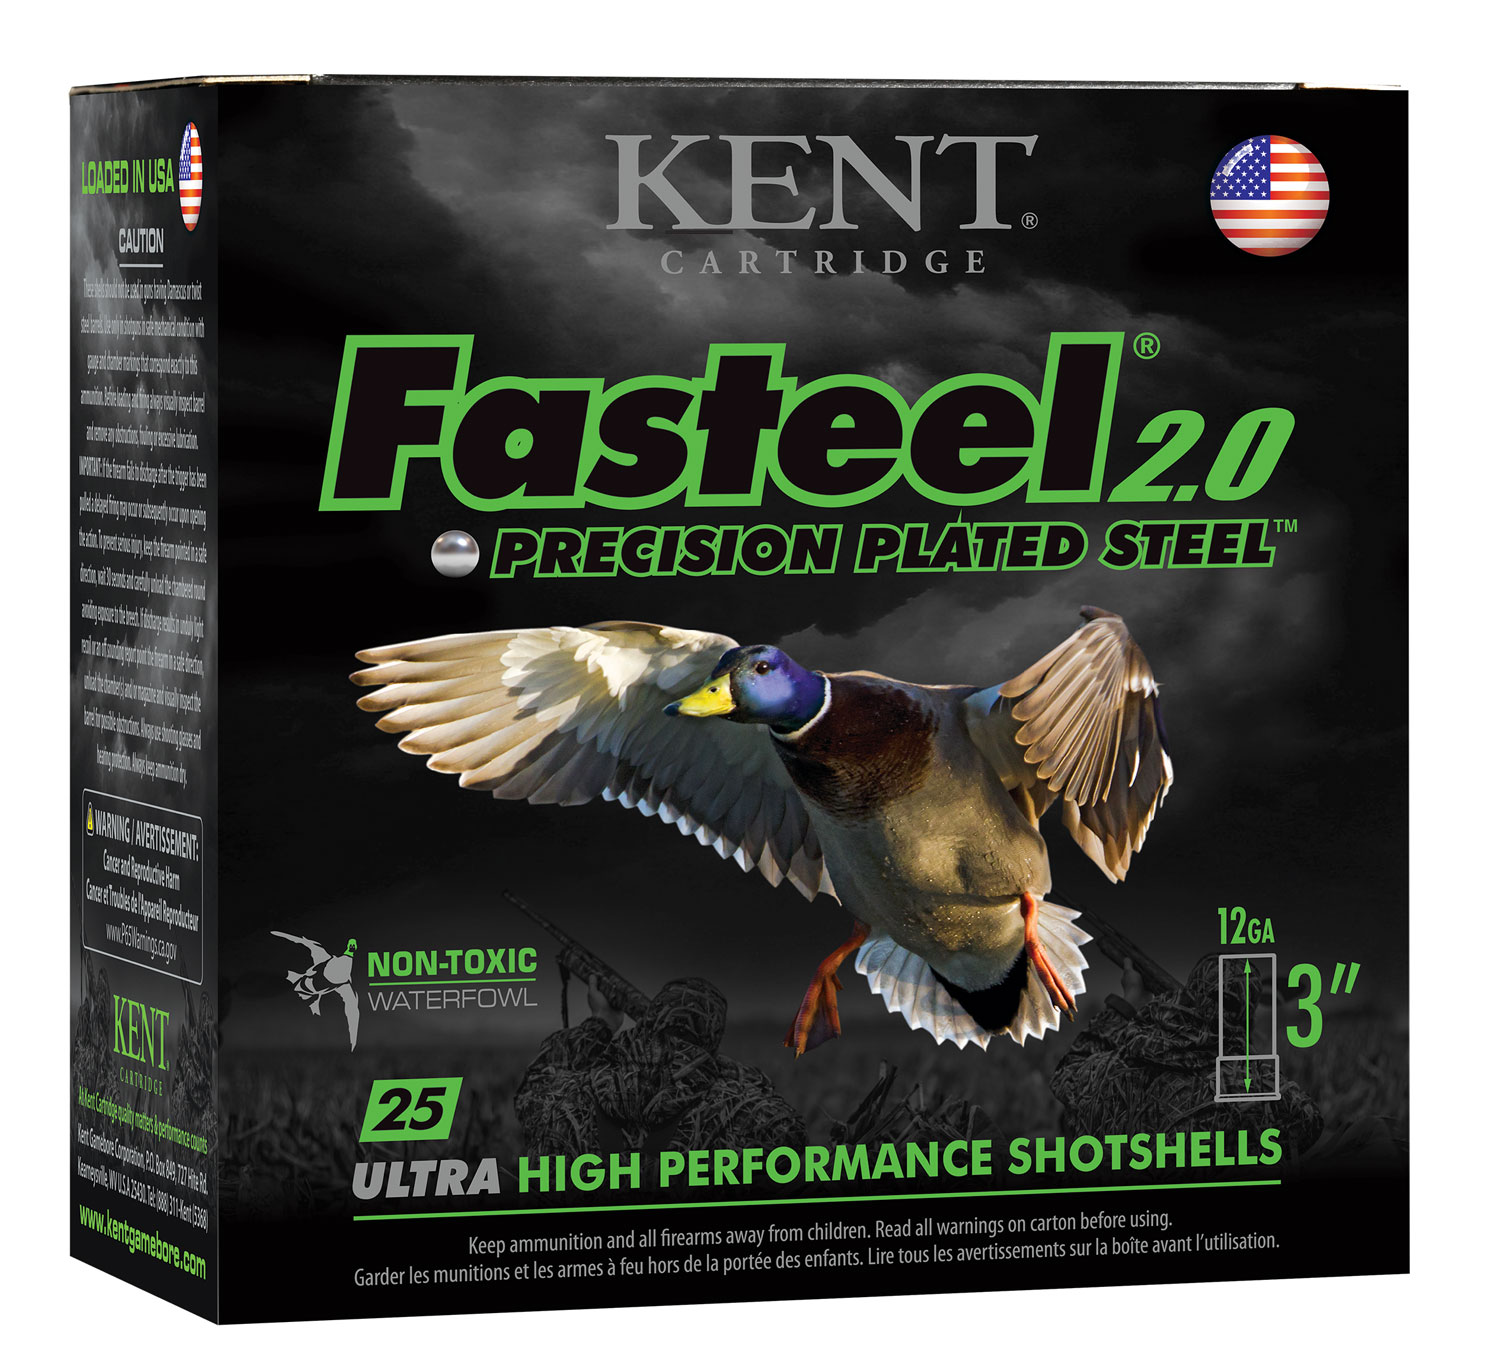 Kent Cartridge K123FS361 Fasteel Waterfowl 12 Gauge 3